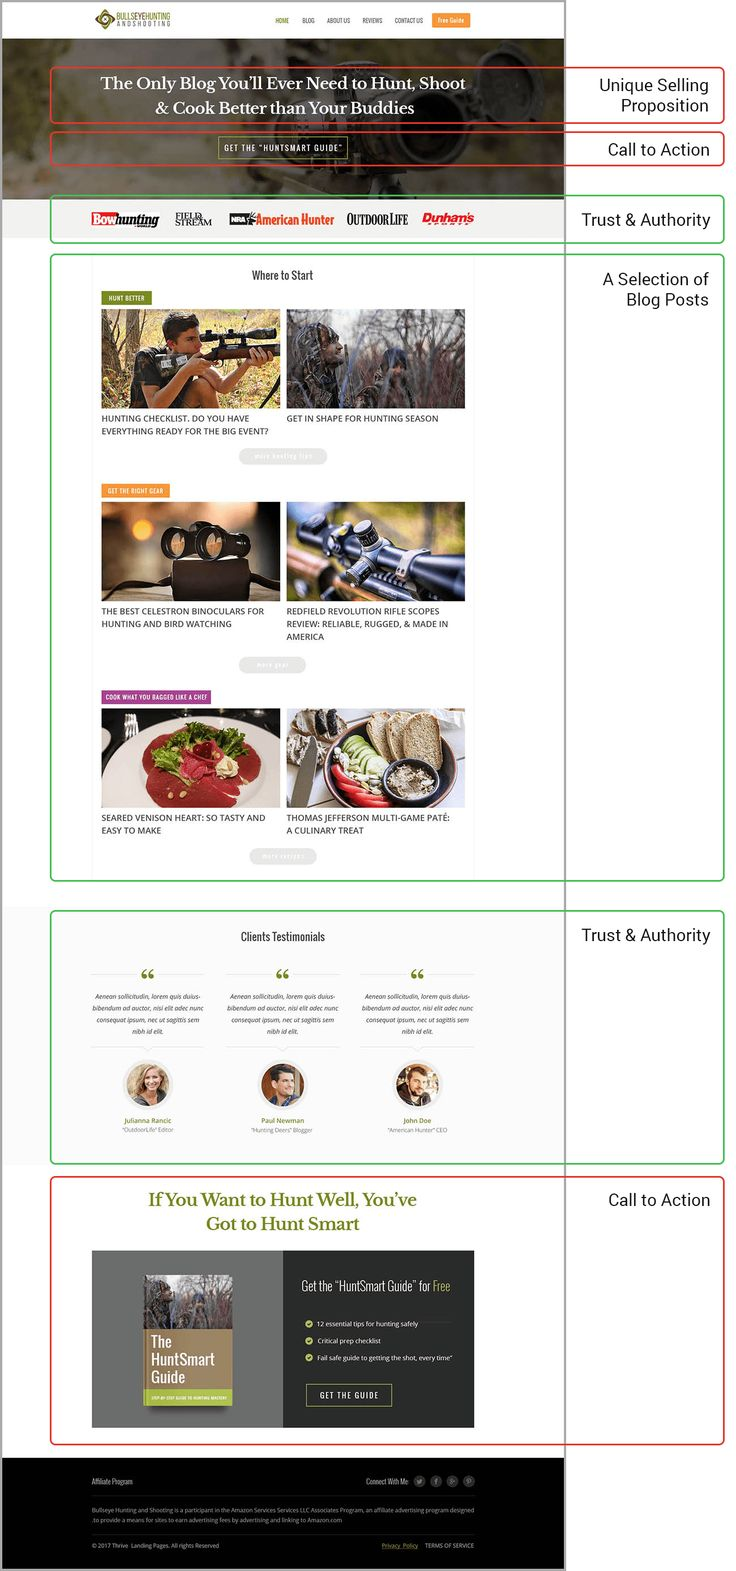 Your blog's homepage is one of the best places to segment your audience, get email address and build trust. You just need this simple recipe...